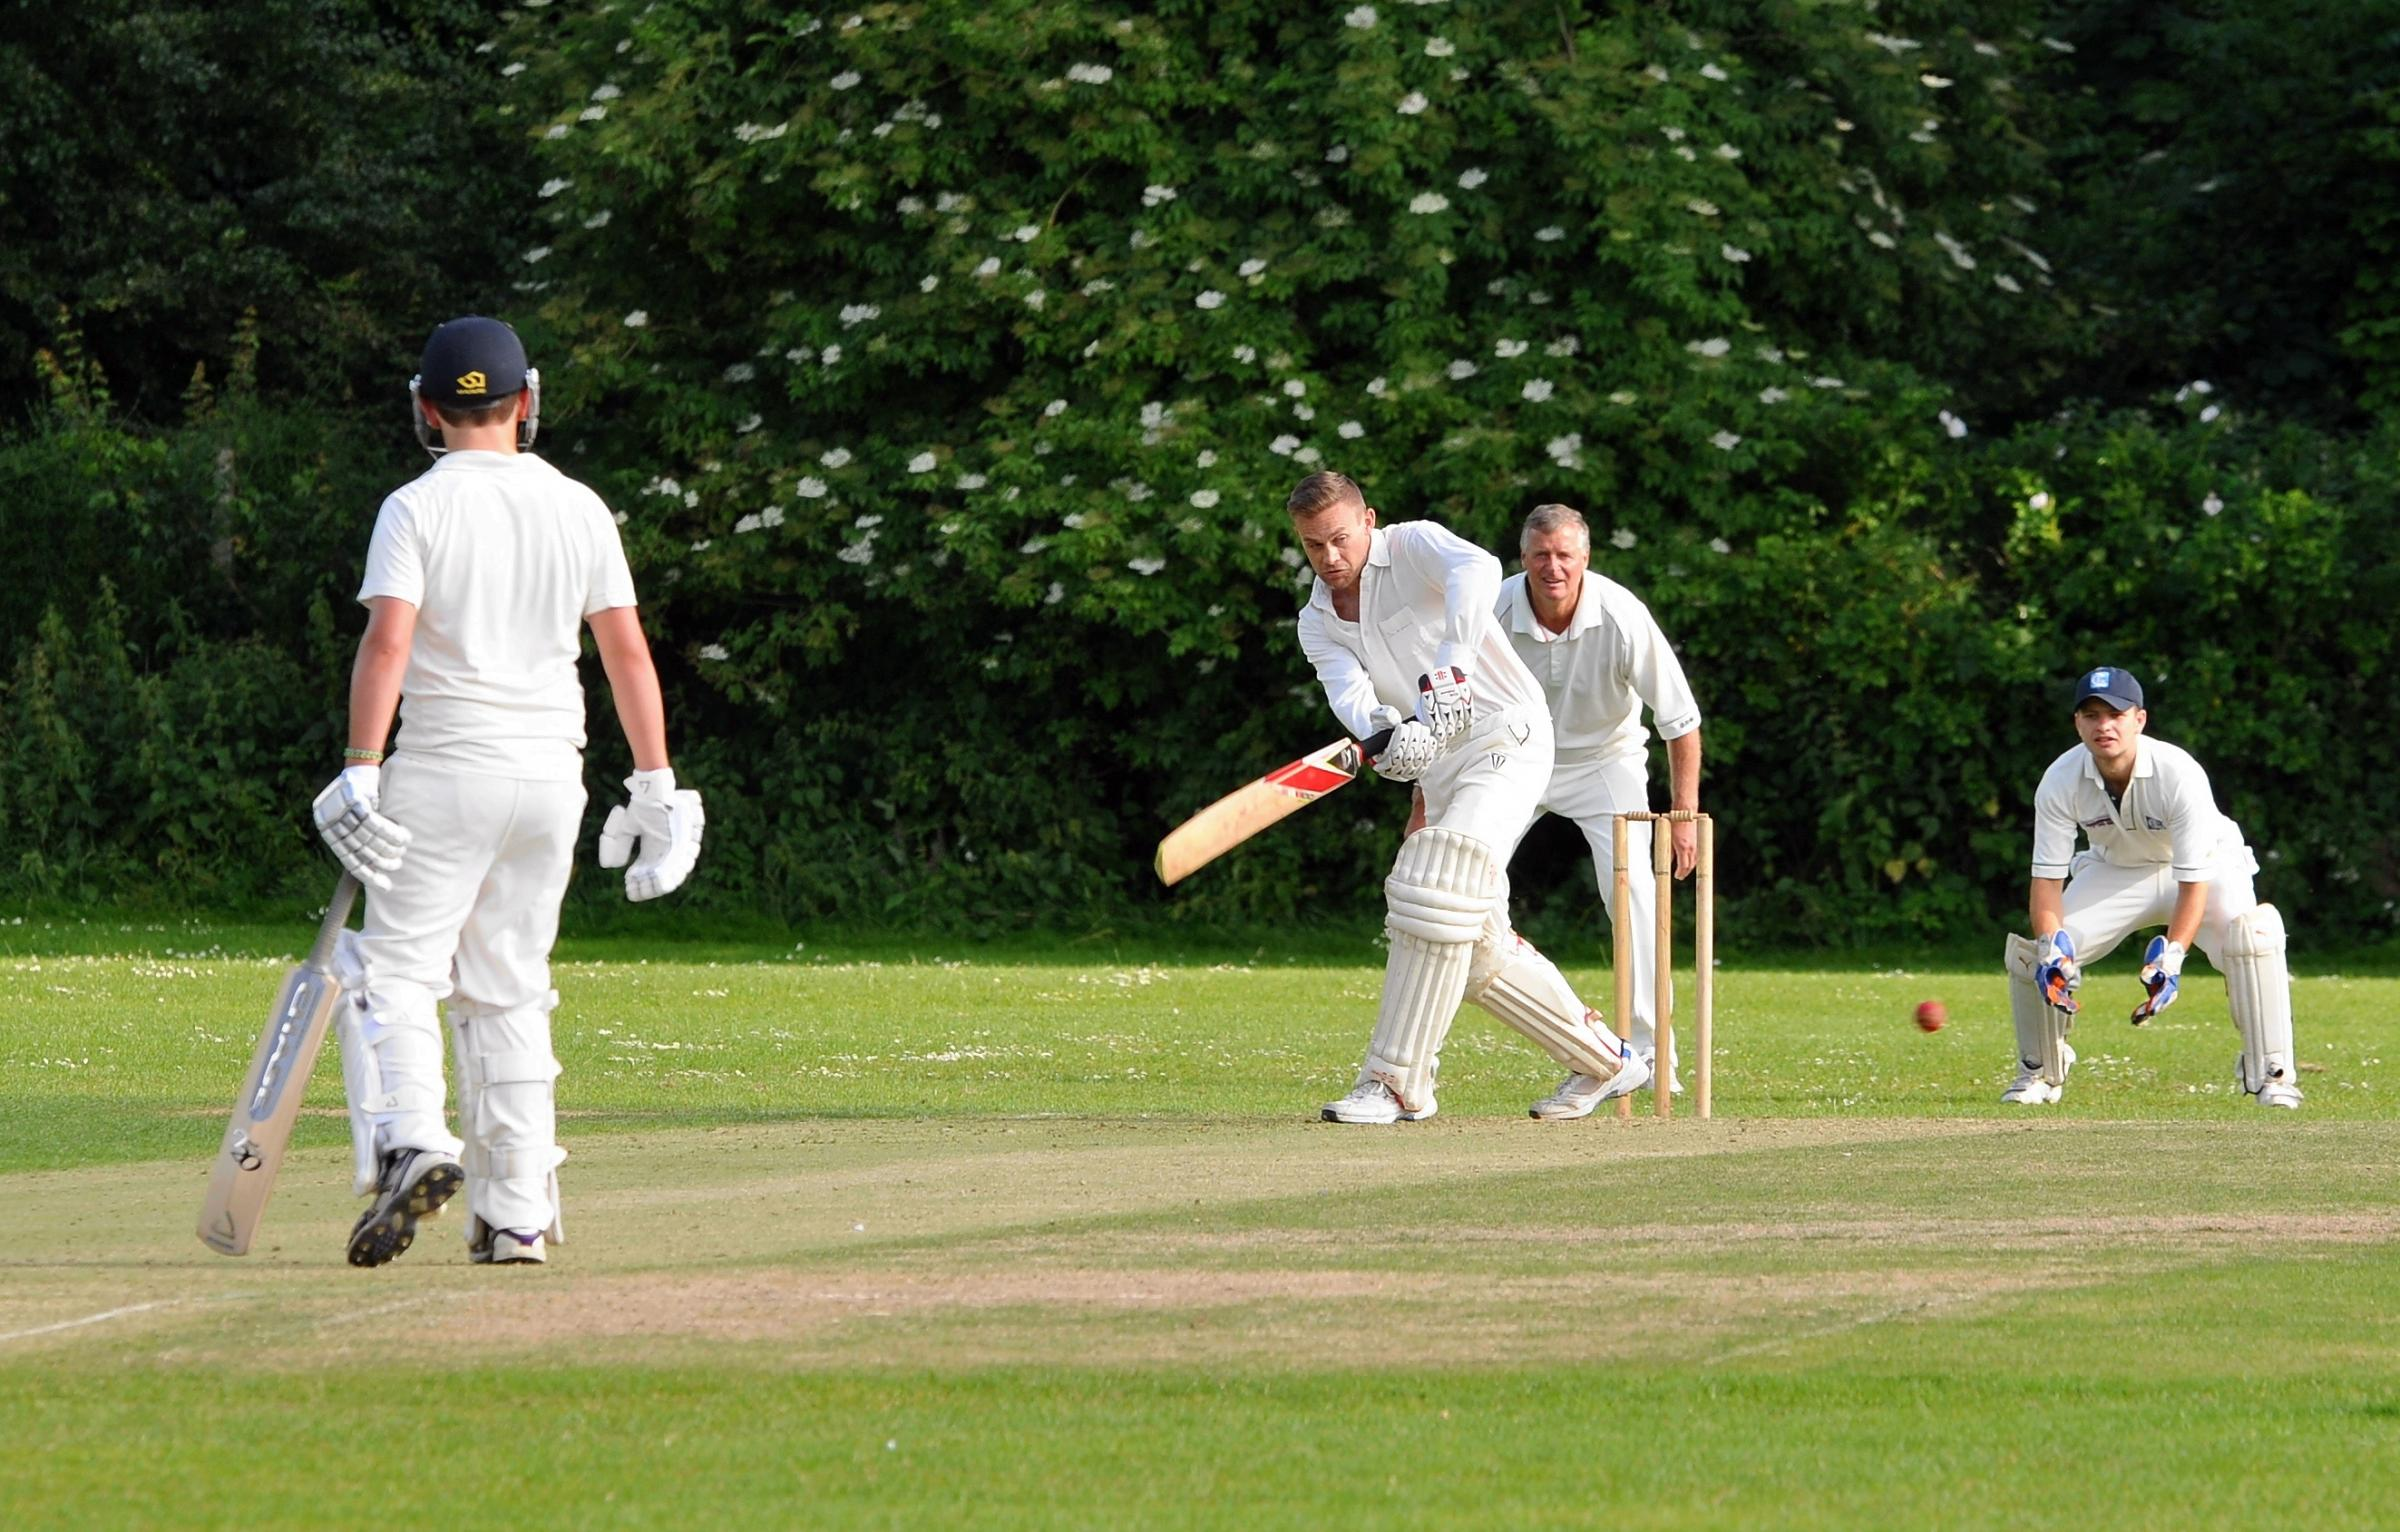 John Anthony batting for Basingstoke IV in their match against Longparish